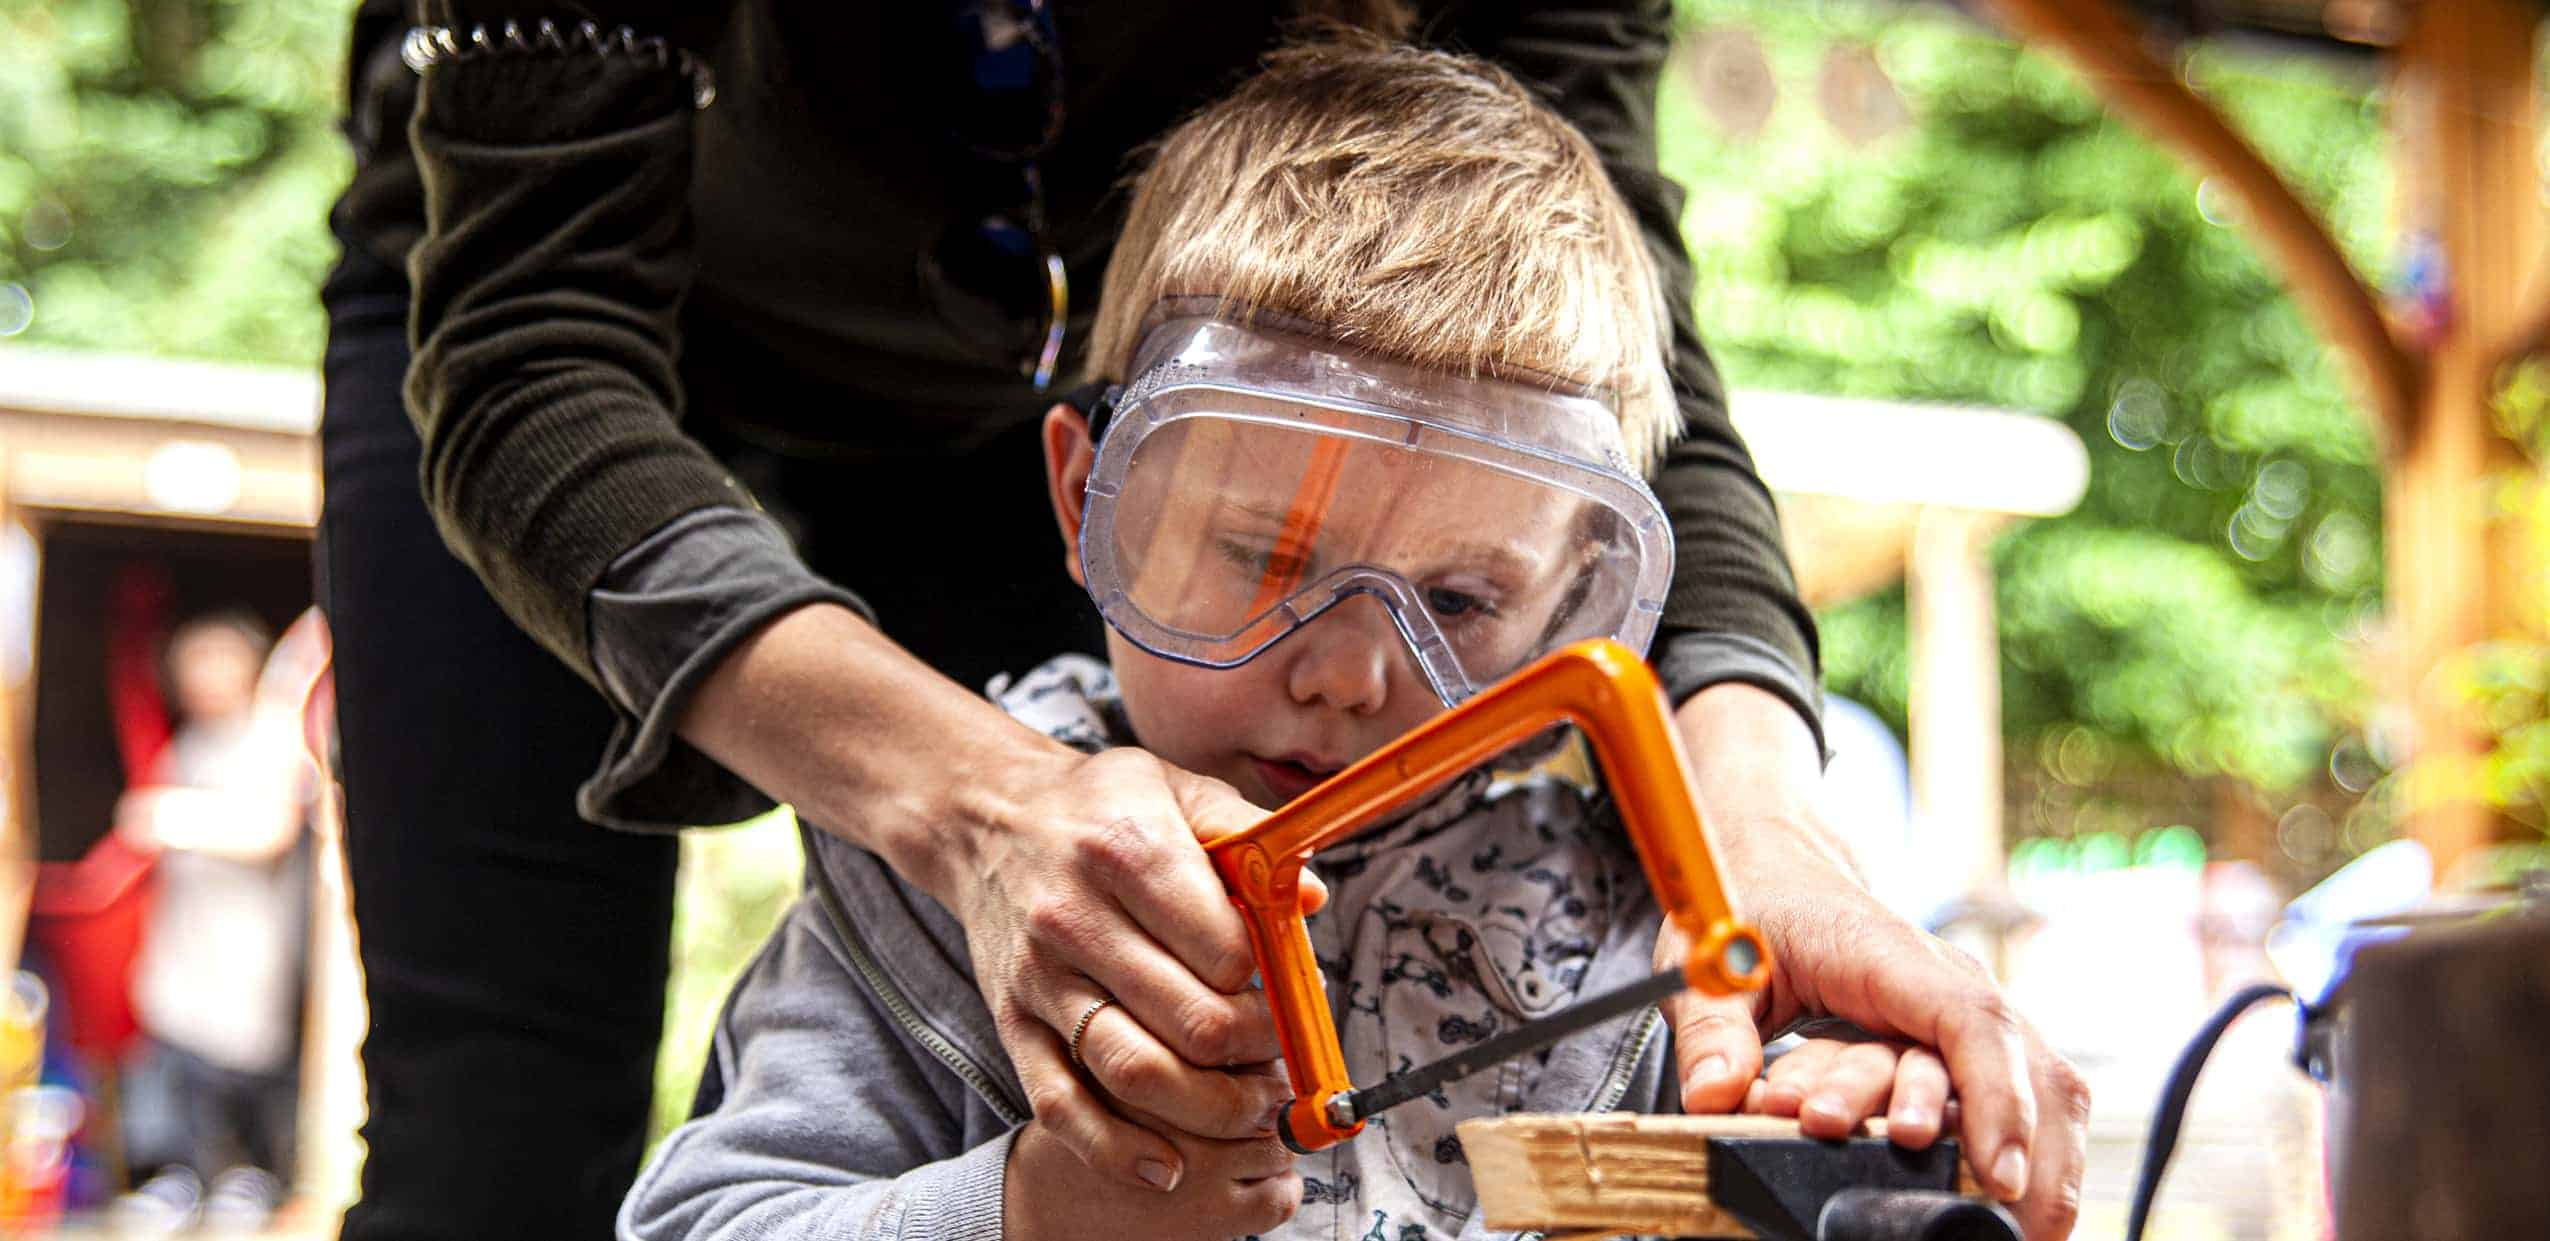 Close up of a boy being helped to saw wood in a vice